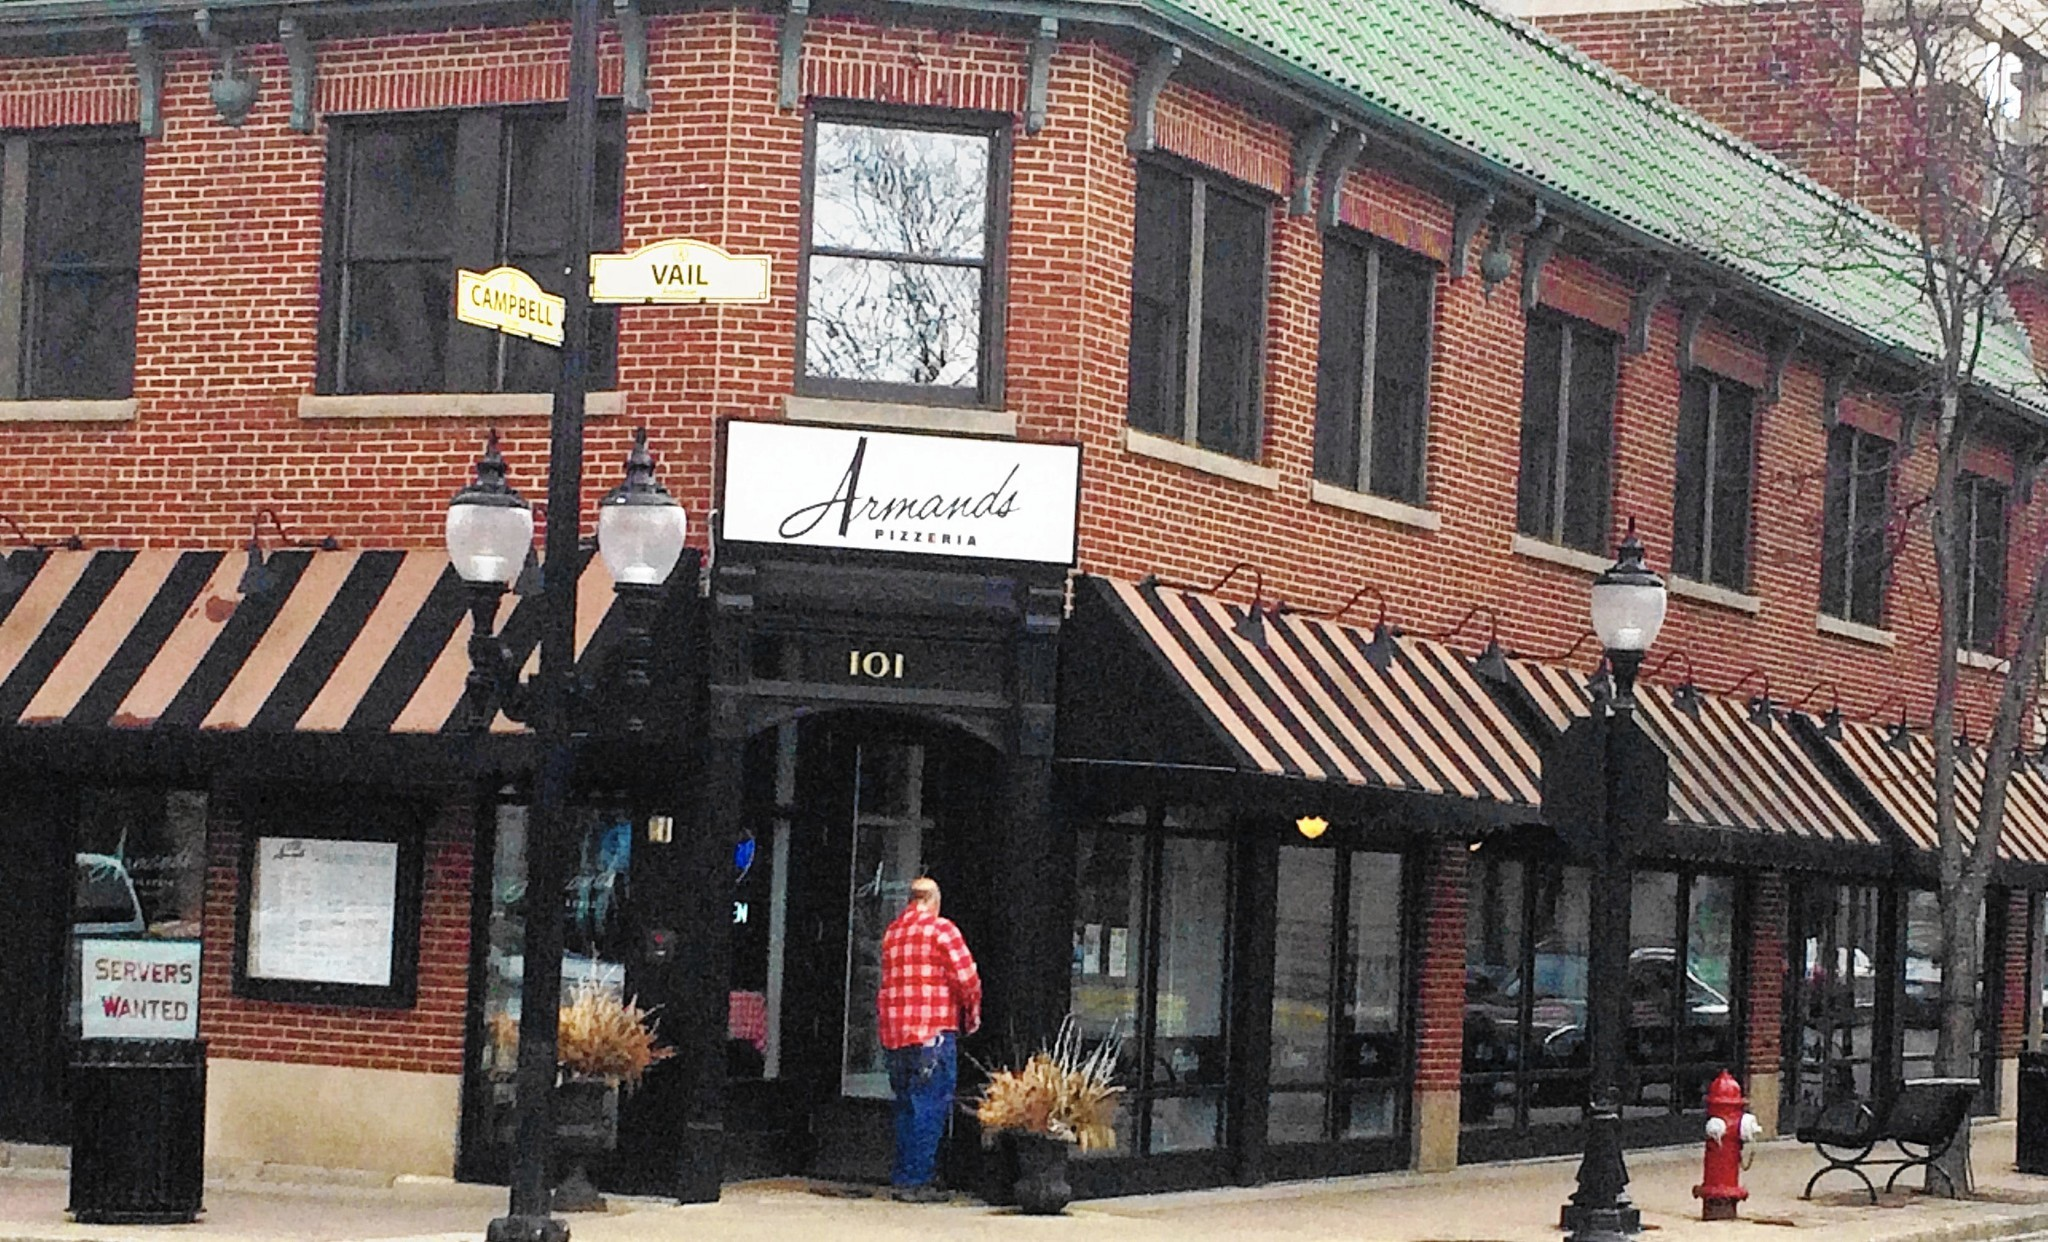 armand s pizza receives approval to offer outdoor dining in armand s pizza receives approval to offer outdoor dining in downtown arlington heights chicago tribune